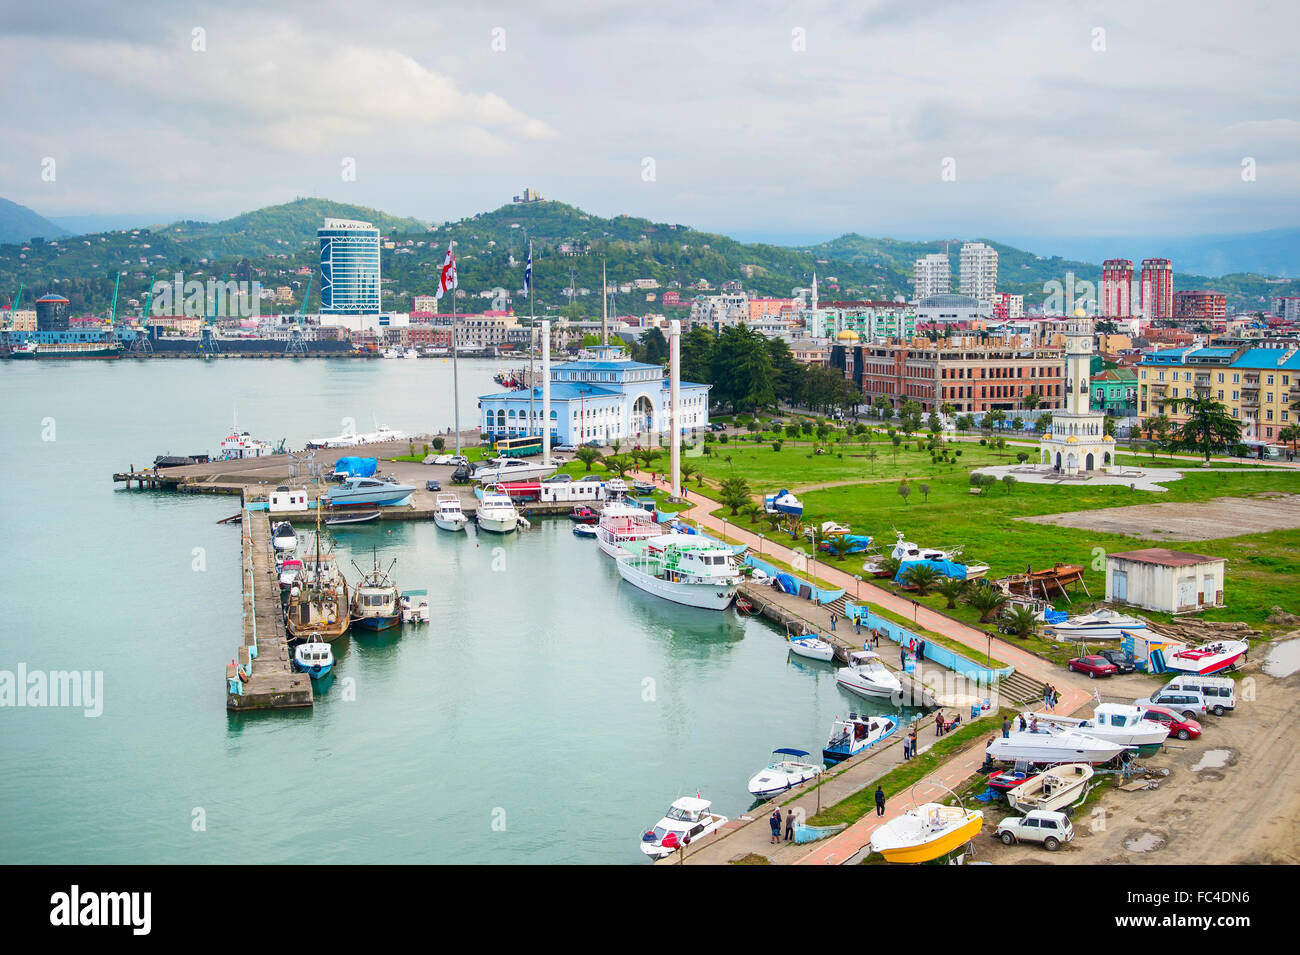 Sea port of Batumi, Georgia - Stock Image